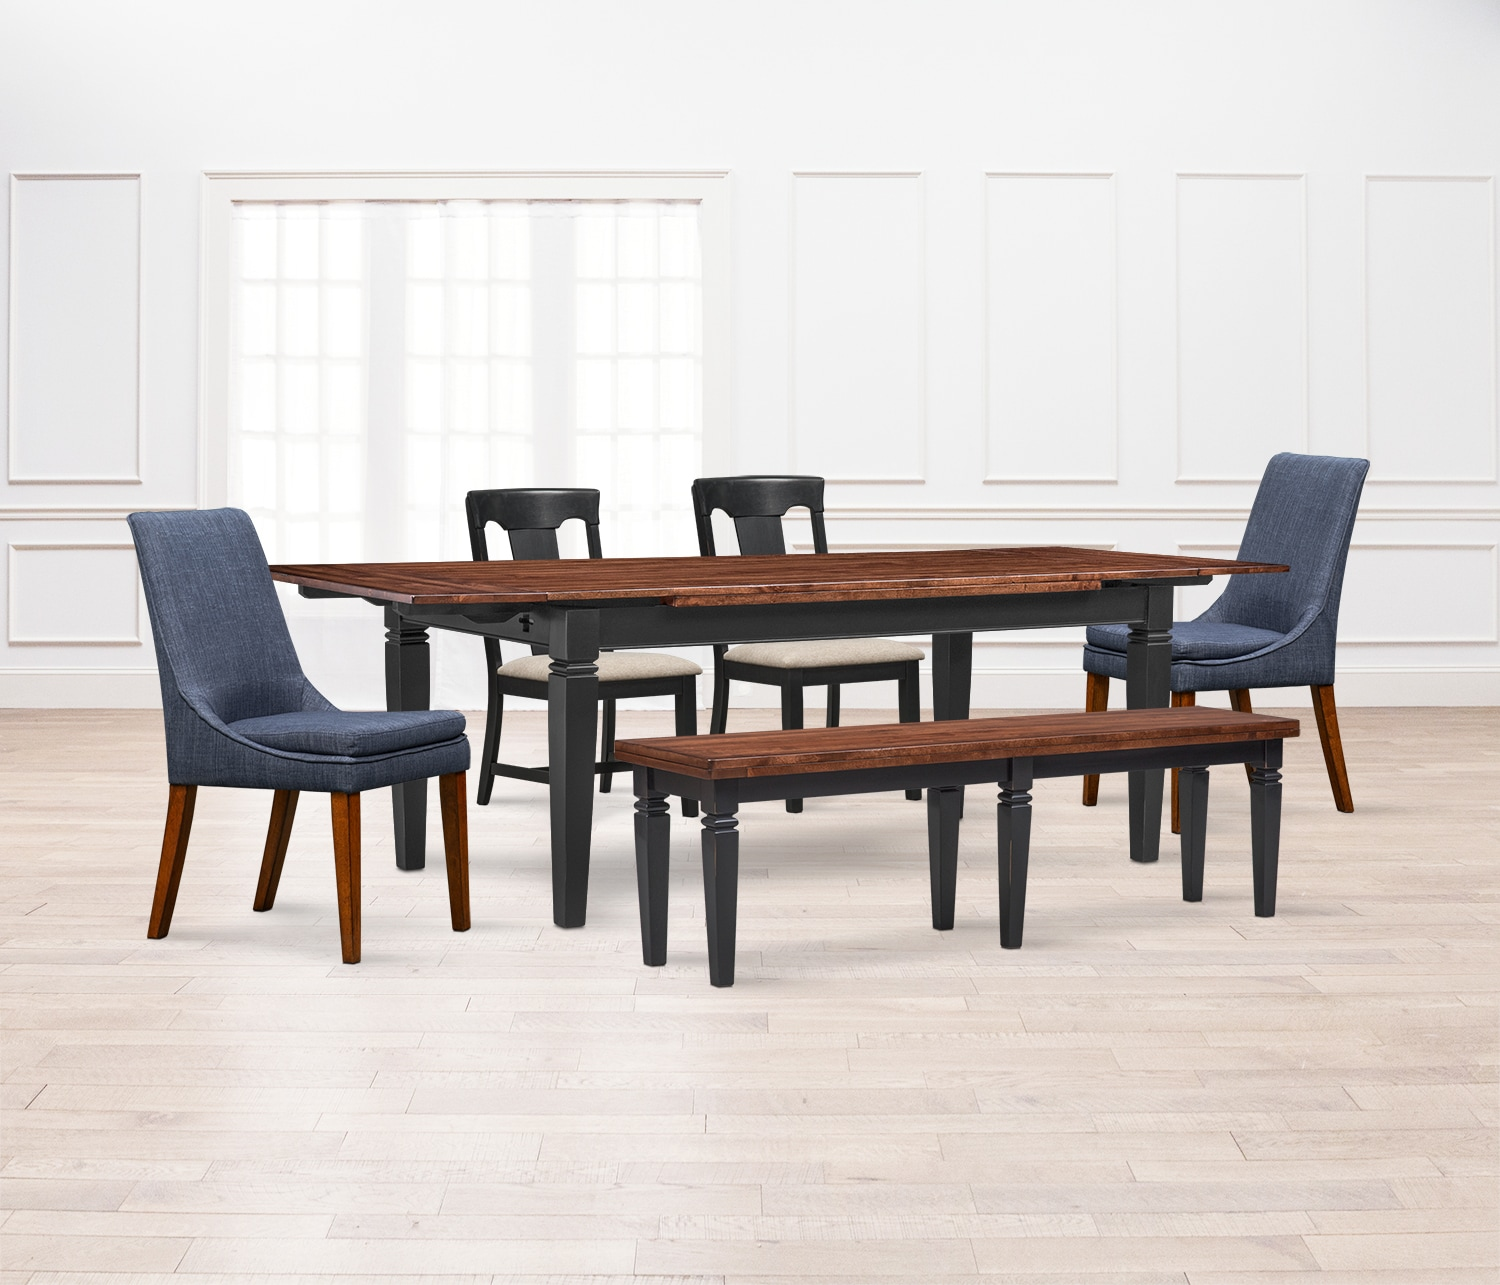 Dining Room Table For 2: Adler Dining Table, 2 Side Chairs, 2 Upholstered Side